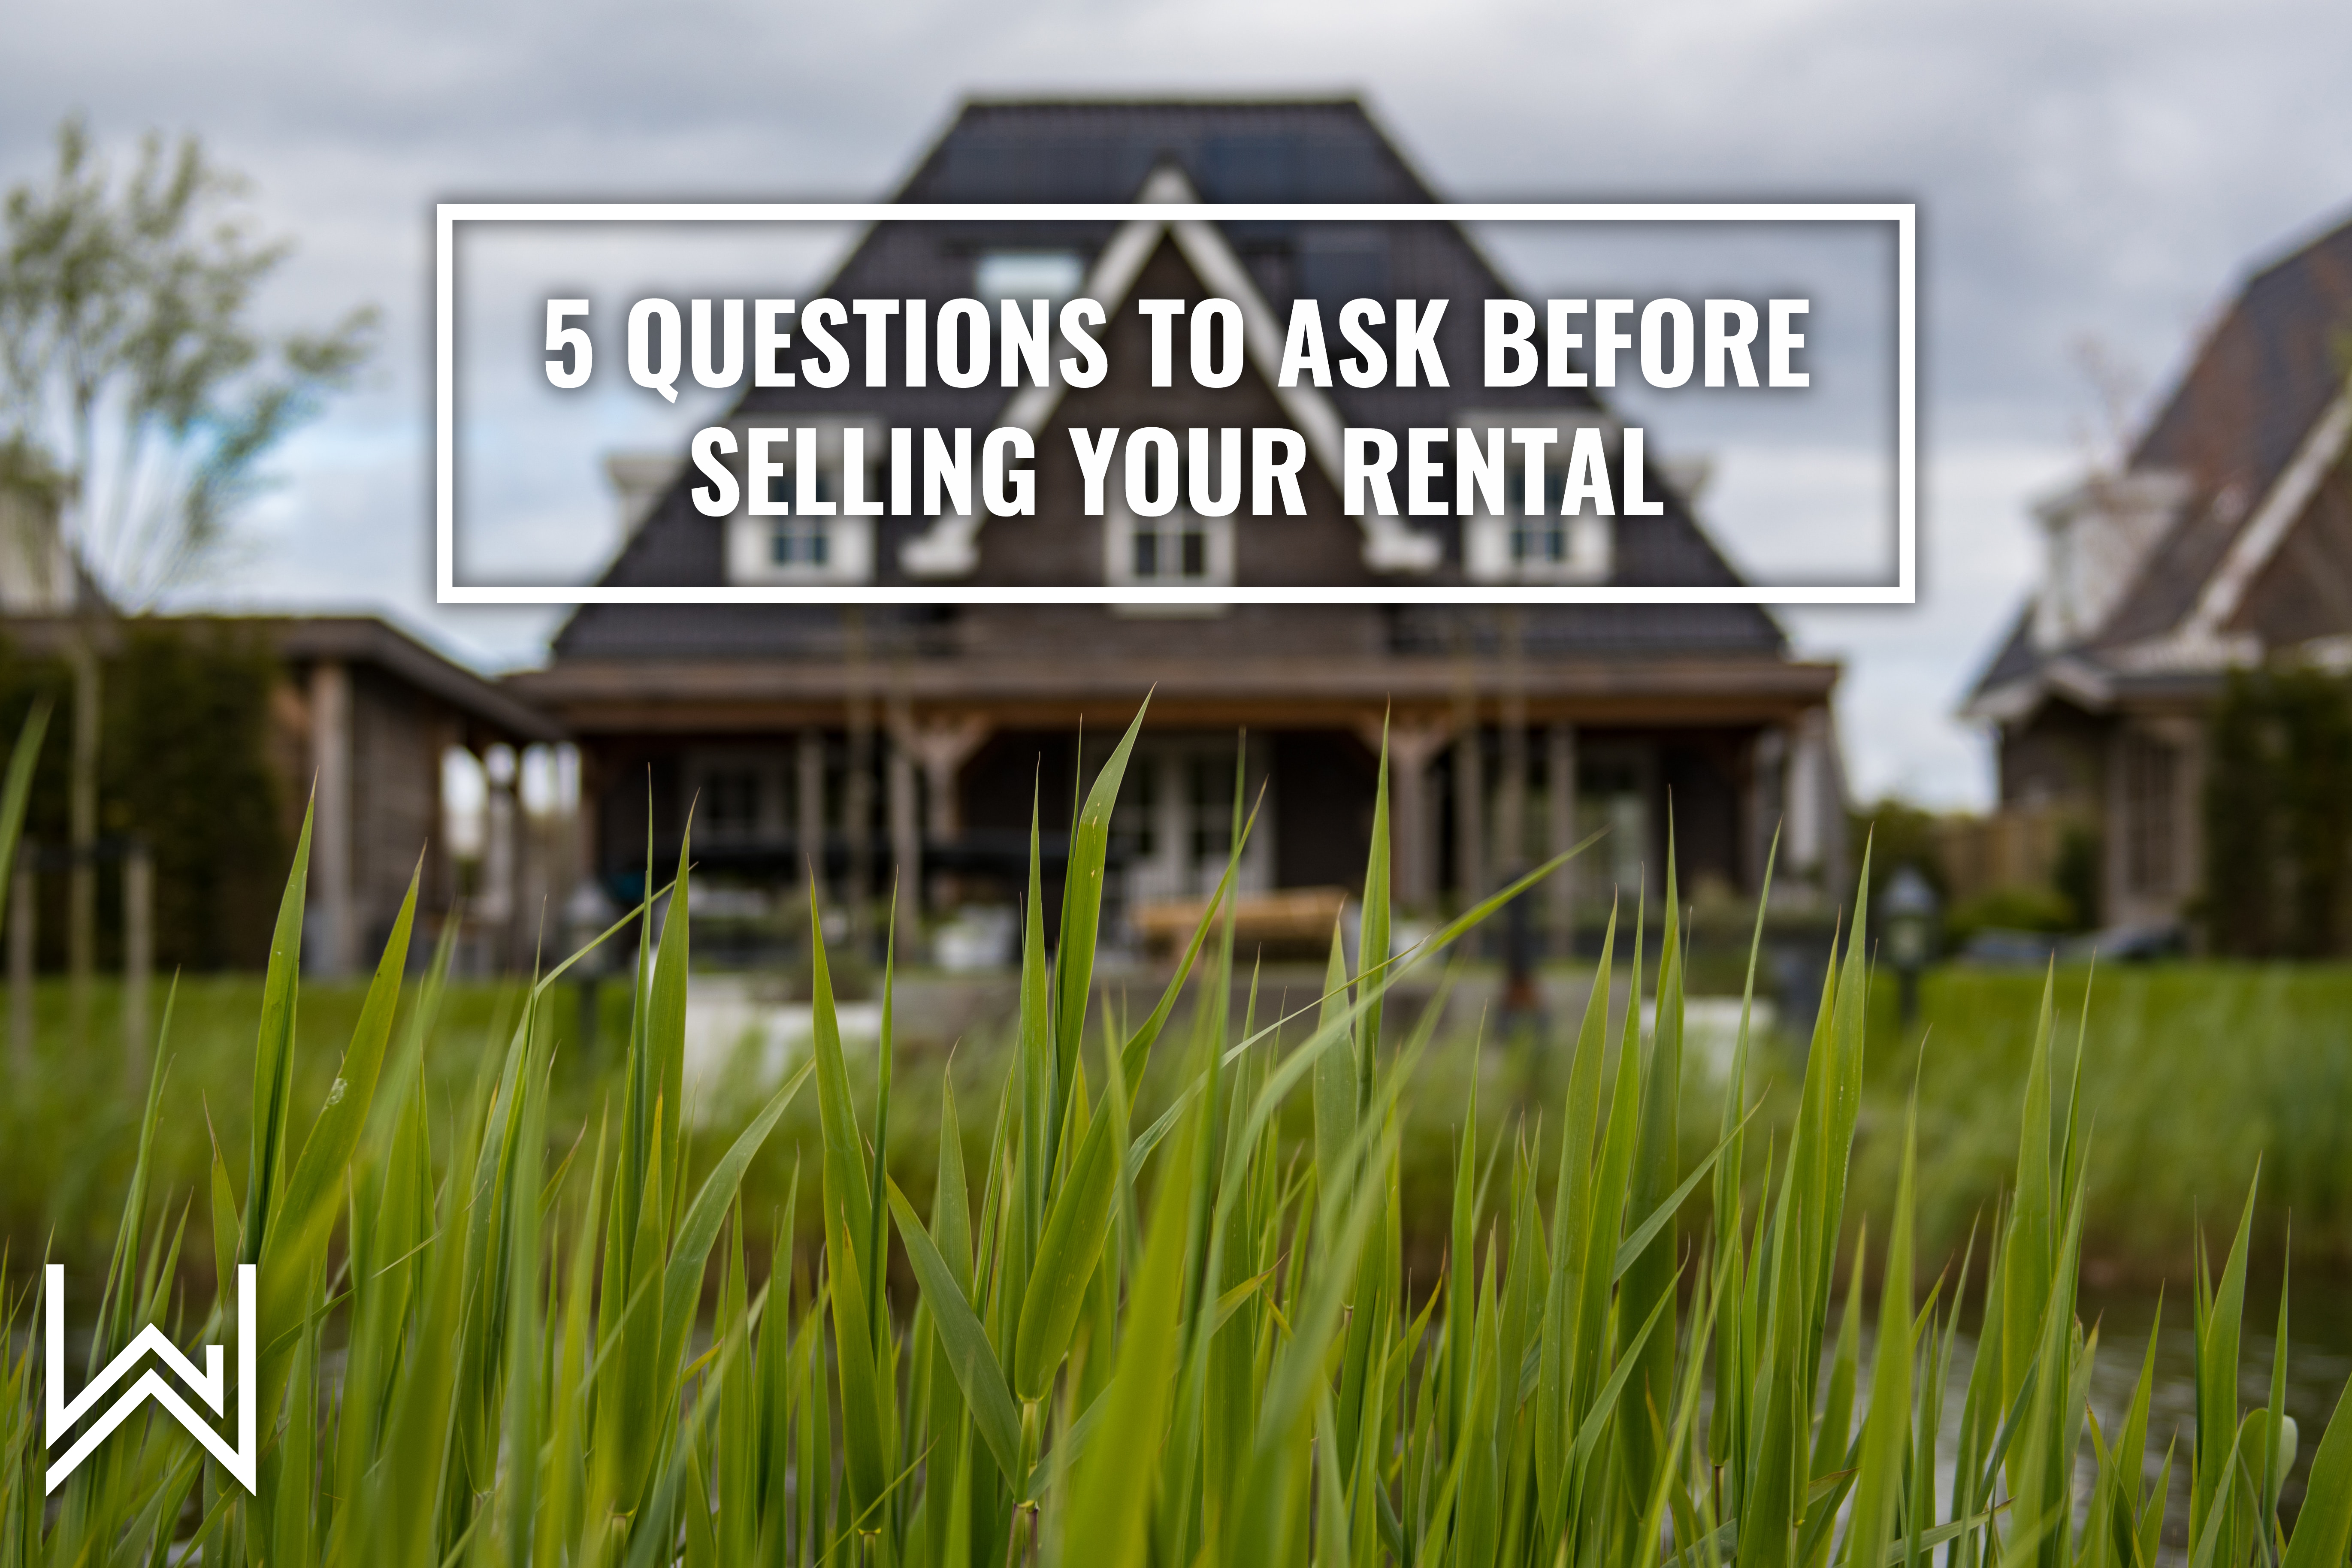 QuestionsBeforeSelling